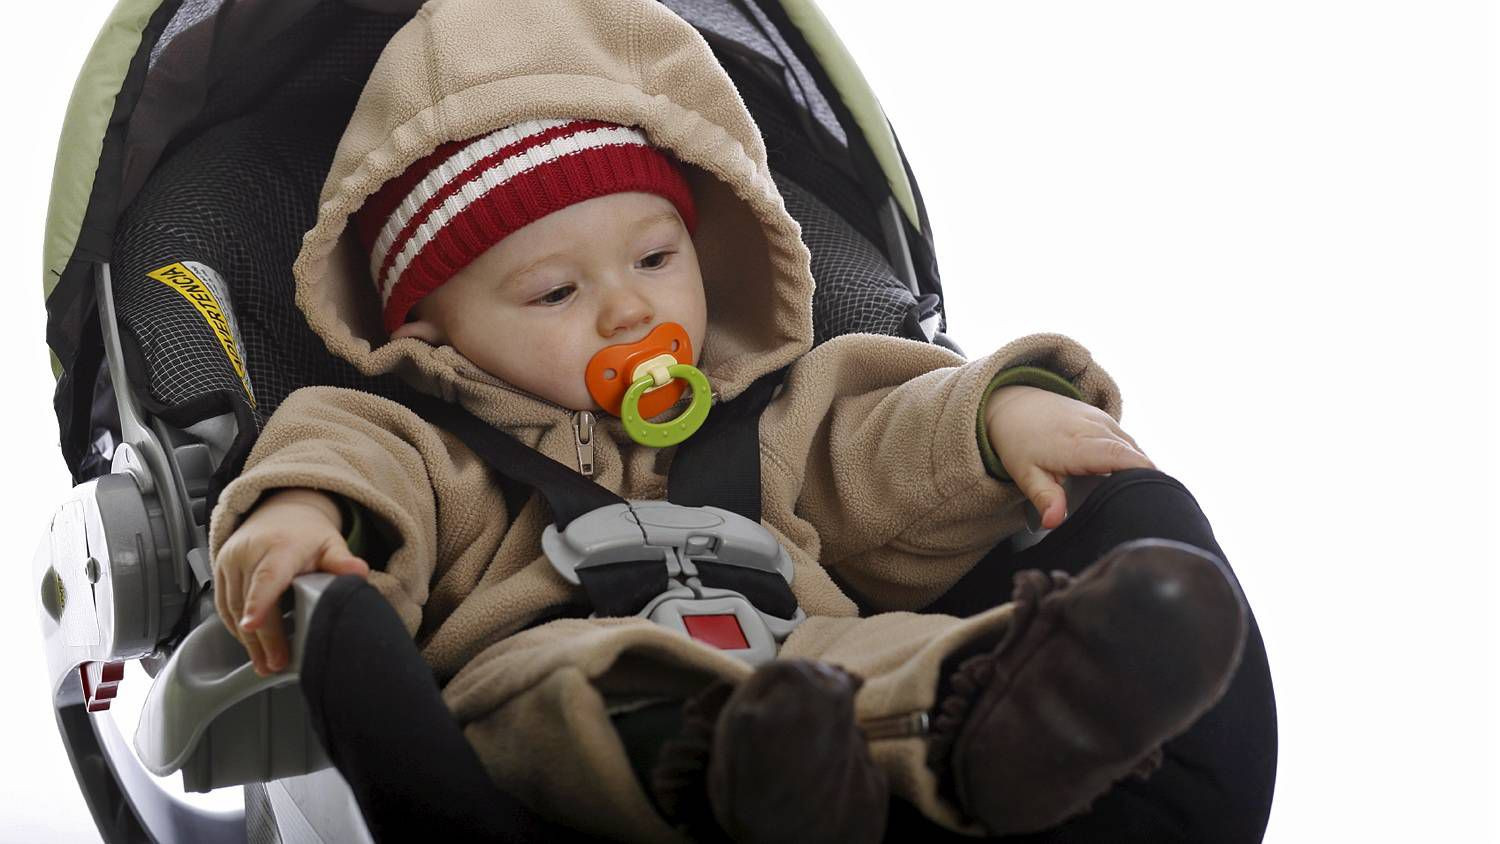 Have You Checked The Expiration Date On Your Childs Car Seat